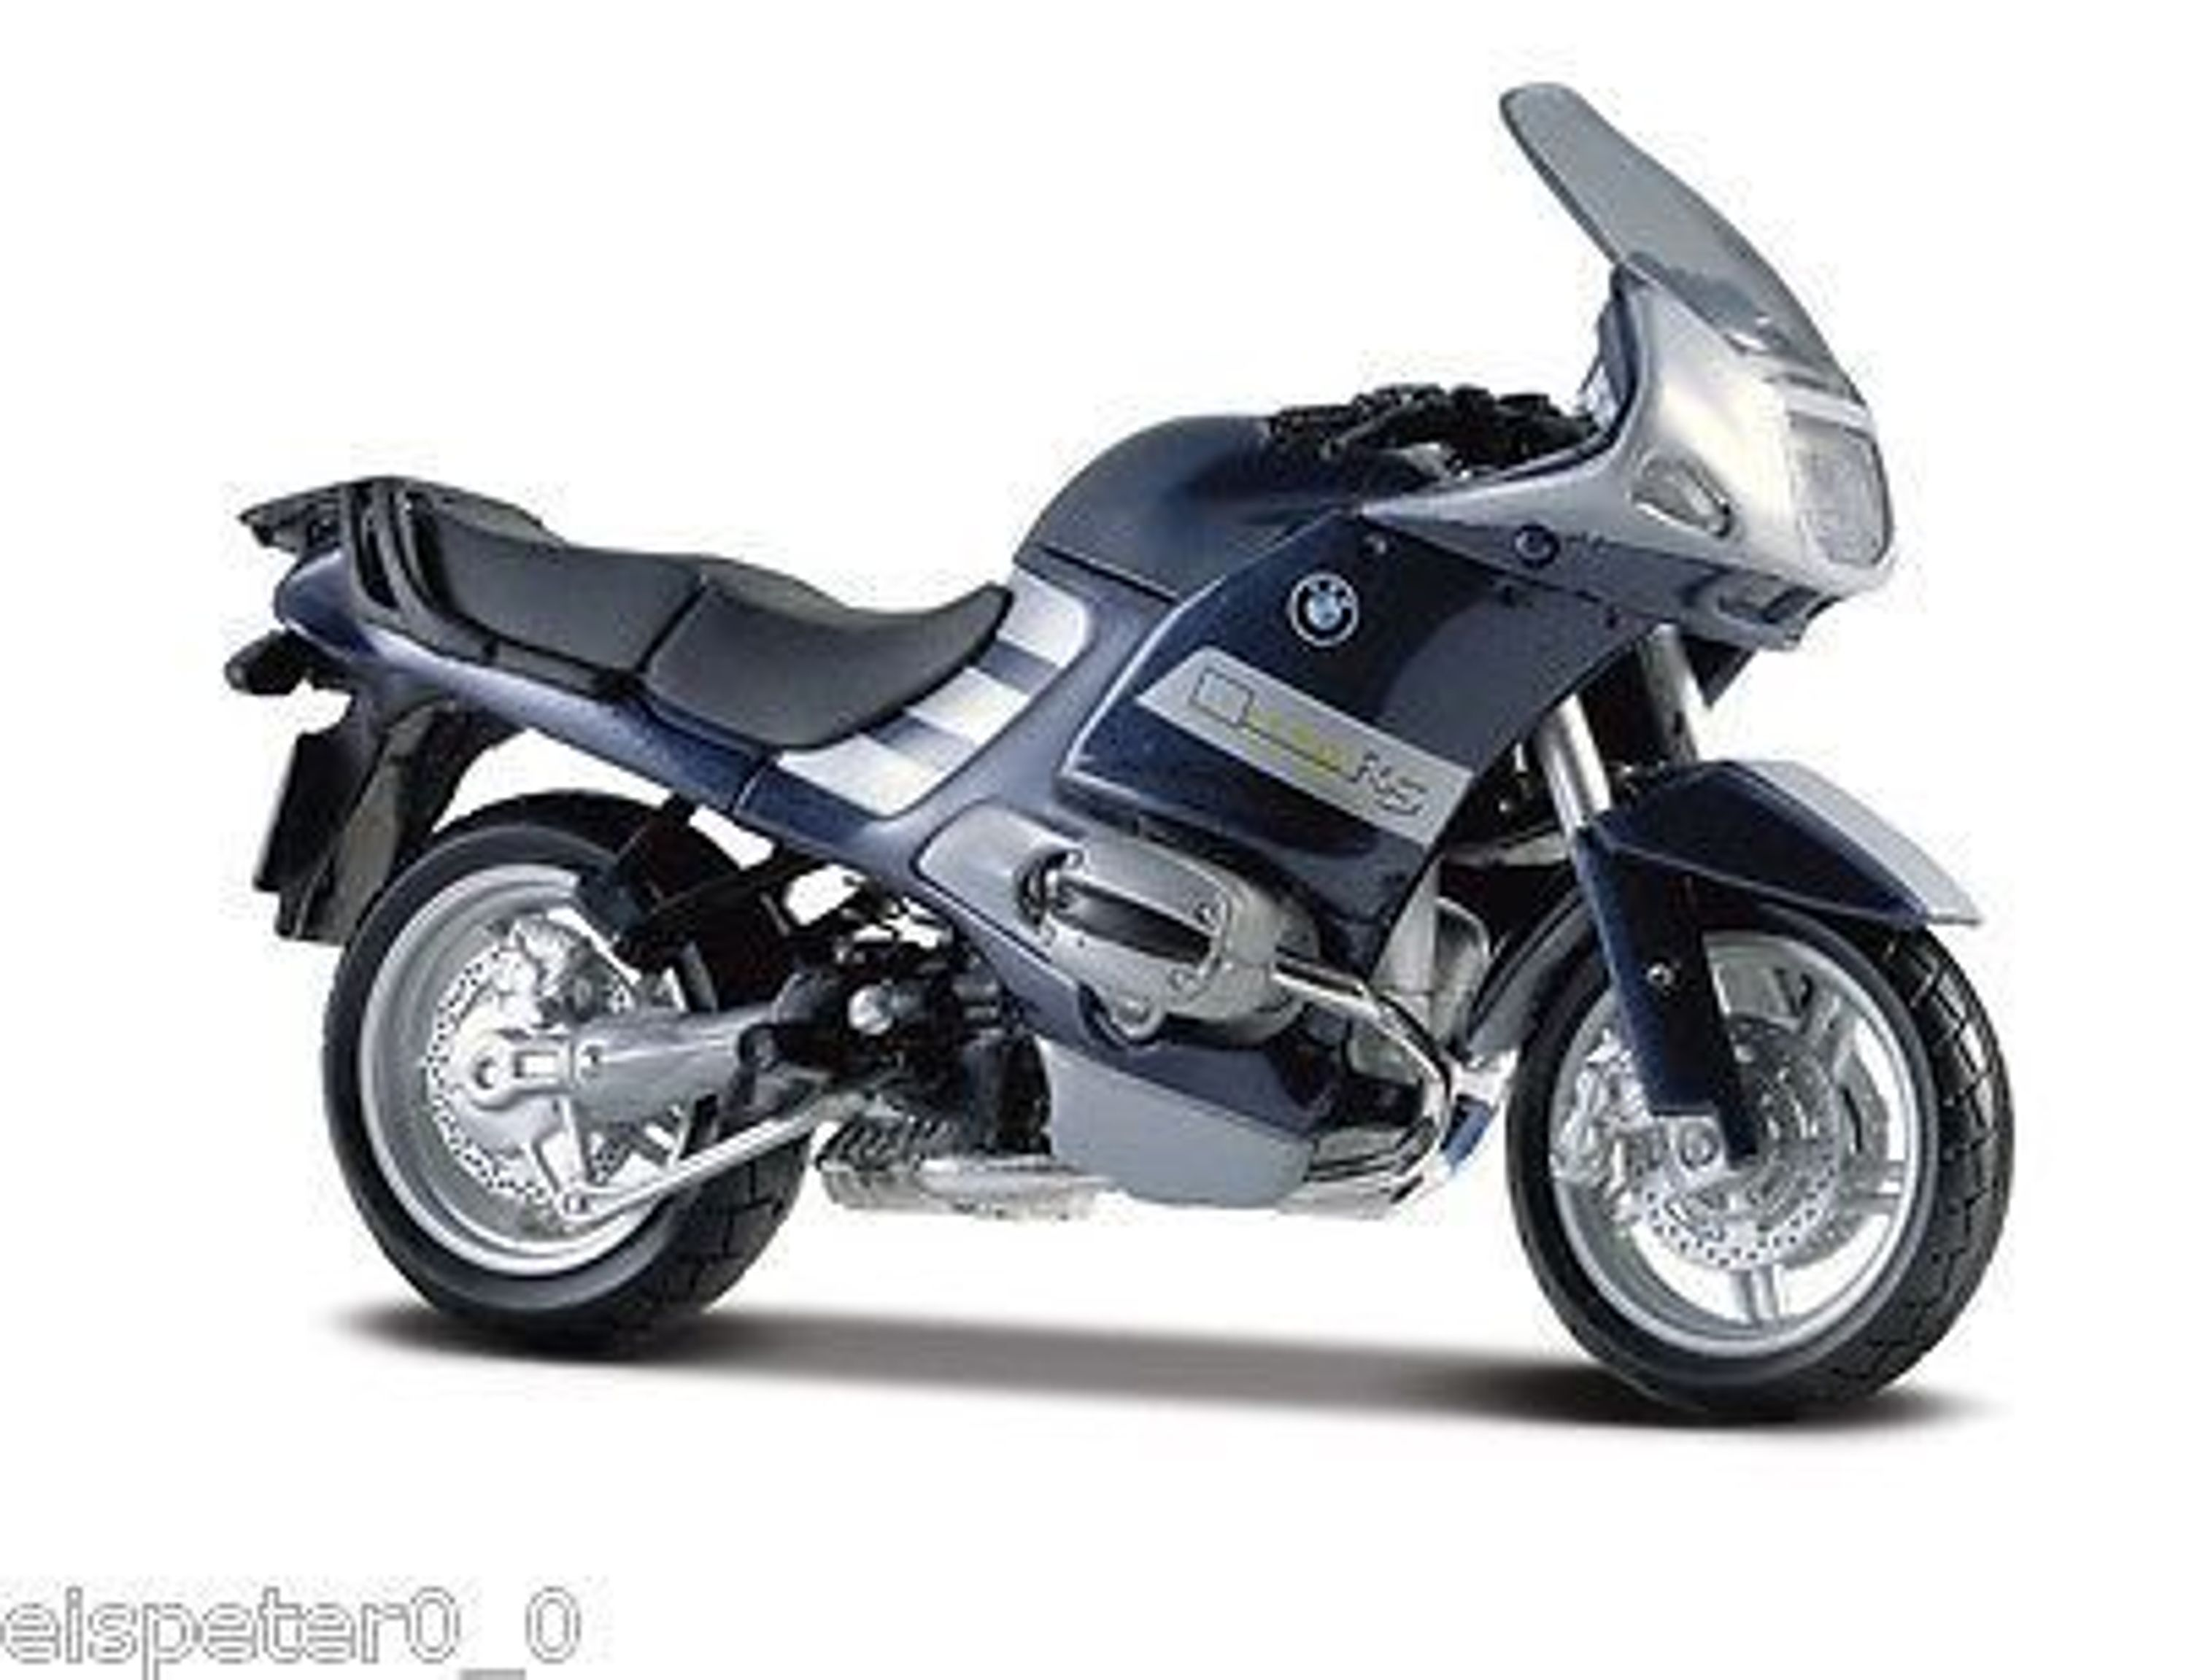 bmw motorrad modelle 1 18 new images bmw. Black Bedroom Furniture Sets. Home Design Ideas